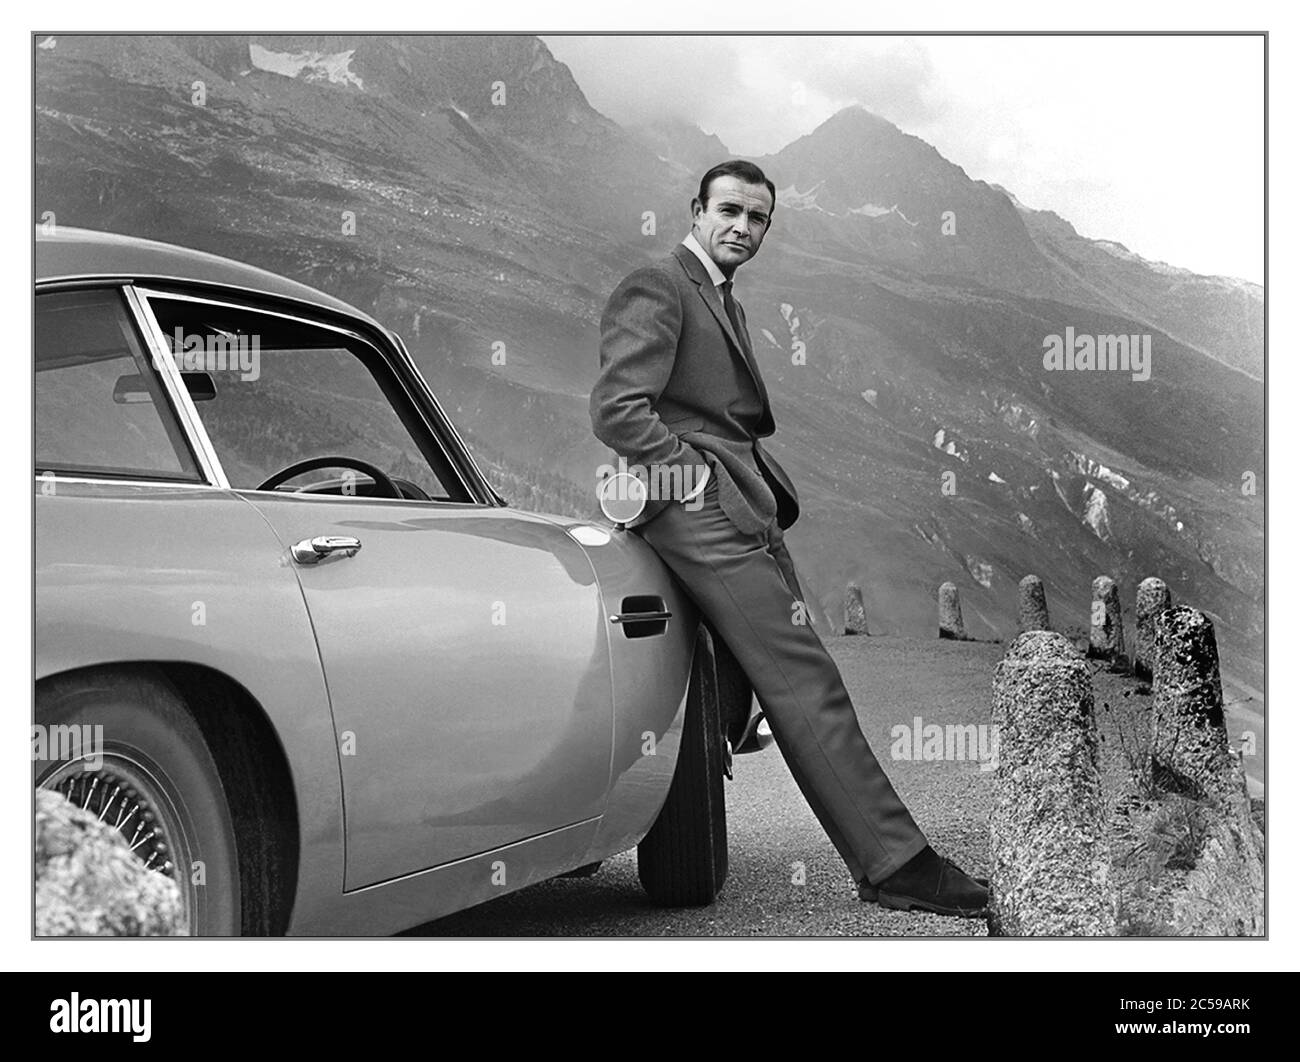 Goldfinger 1964 James Bond Aston Martin Db5 Sean Connery In The Swiss Alps With The Aston Martin Db5 From The James Bond 007 Film Movie Goldfinger 1964 Connery With An Aston Martin